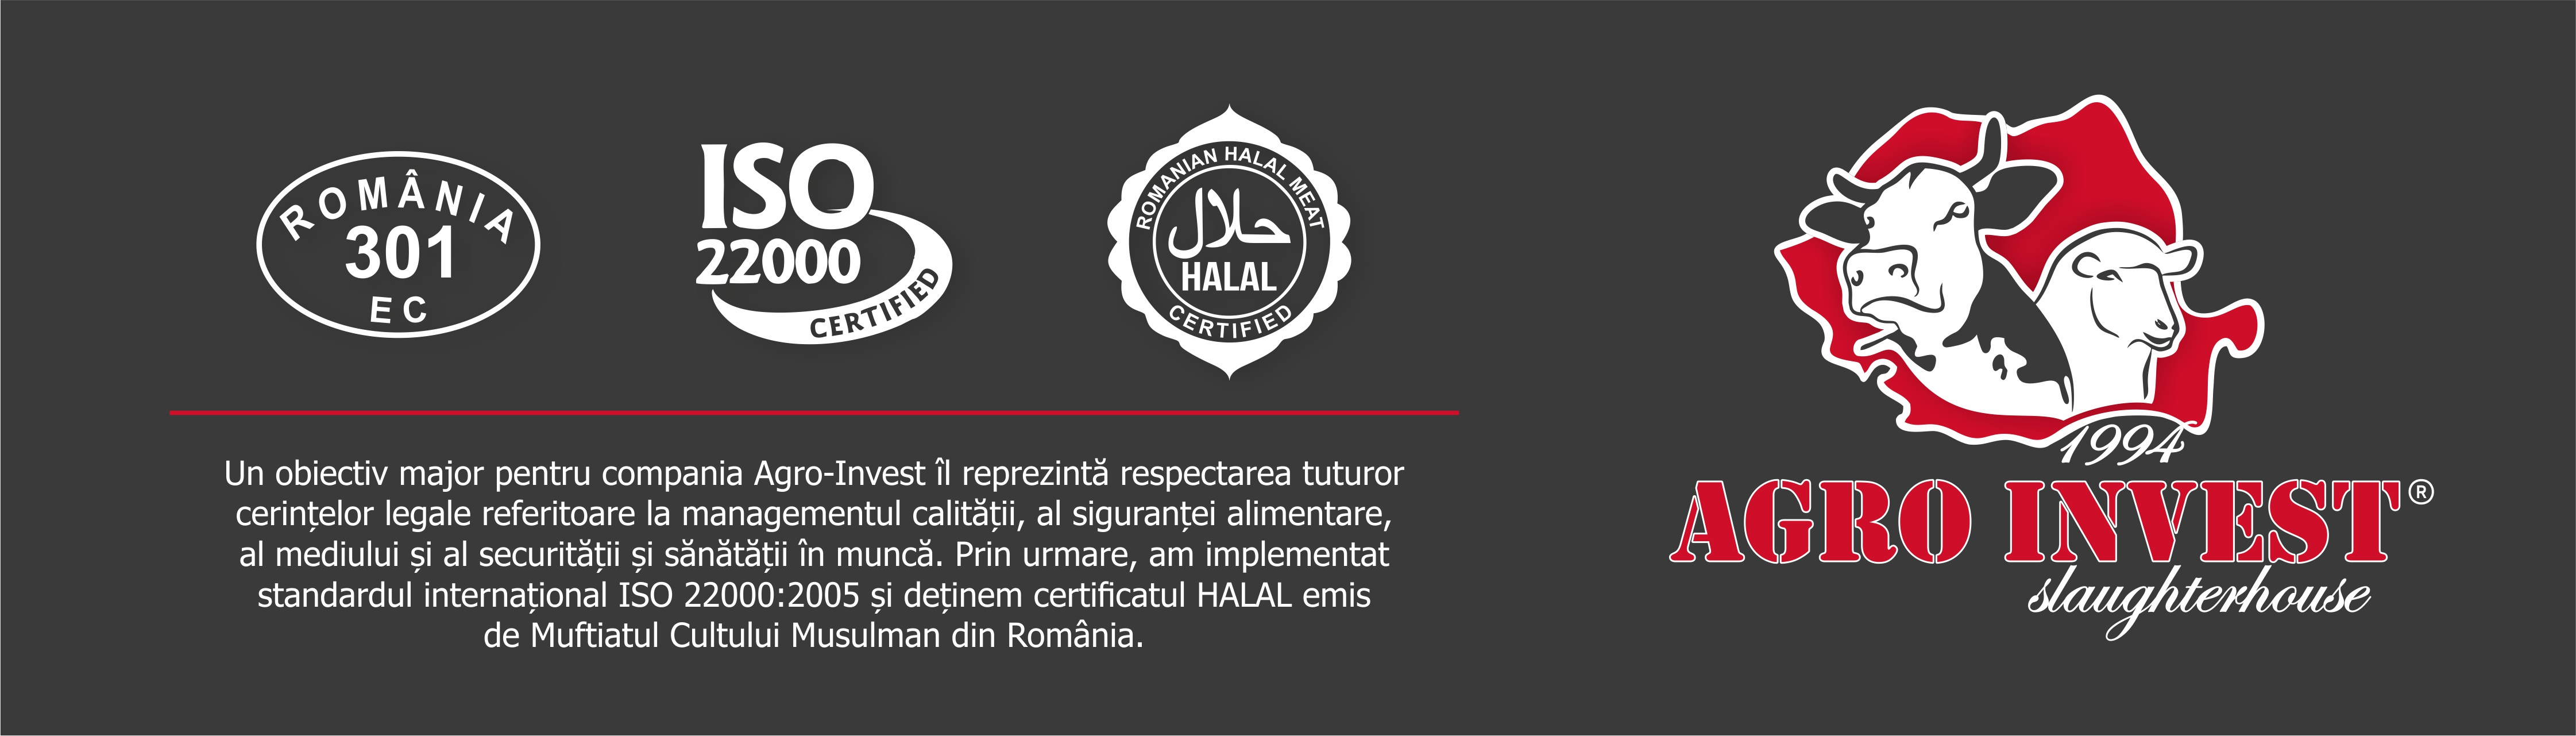 Certificate + Text - HALAL modificat